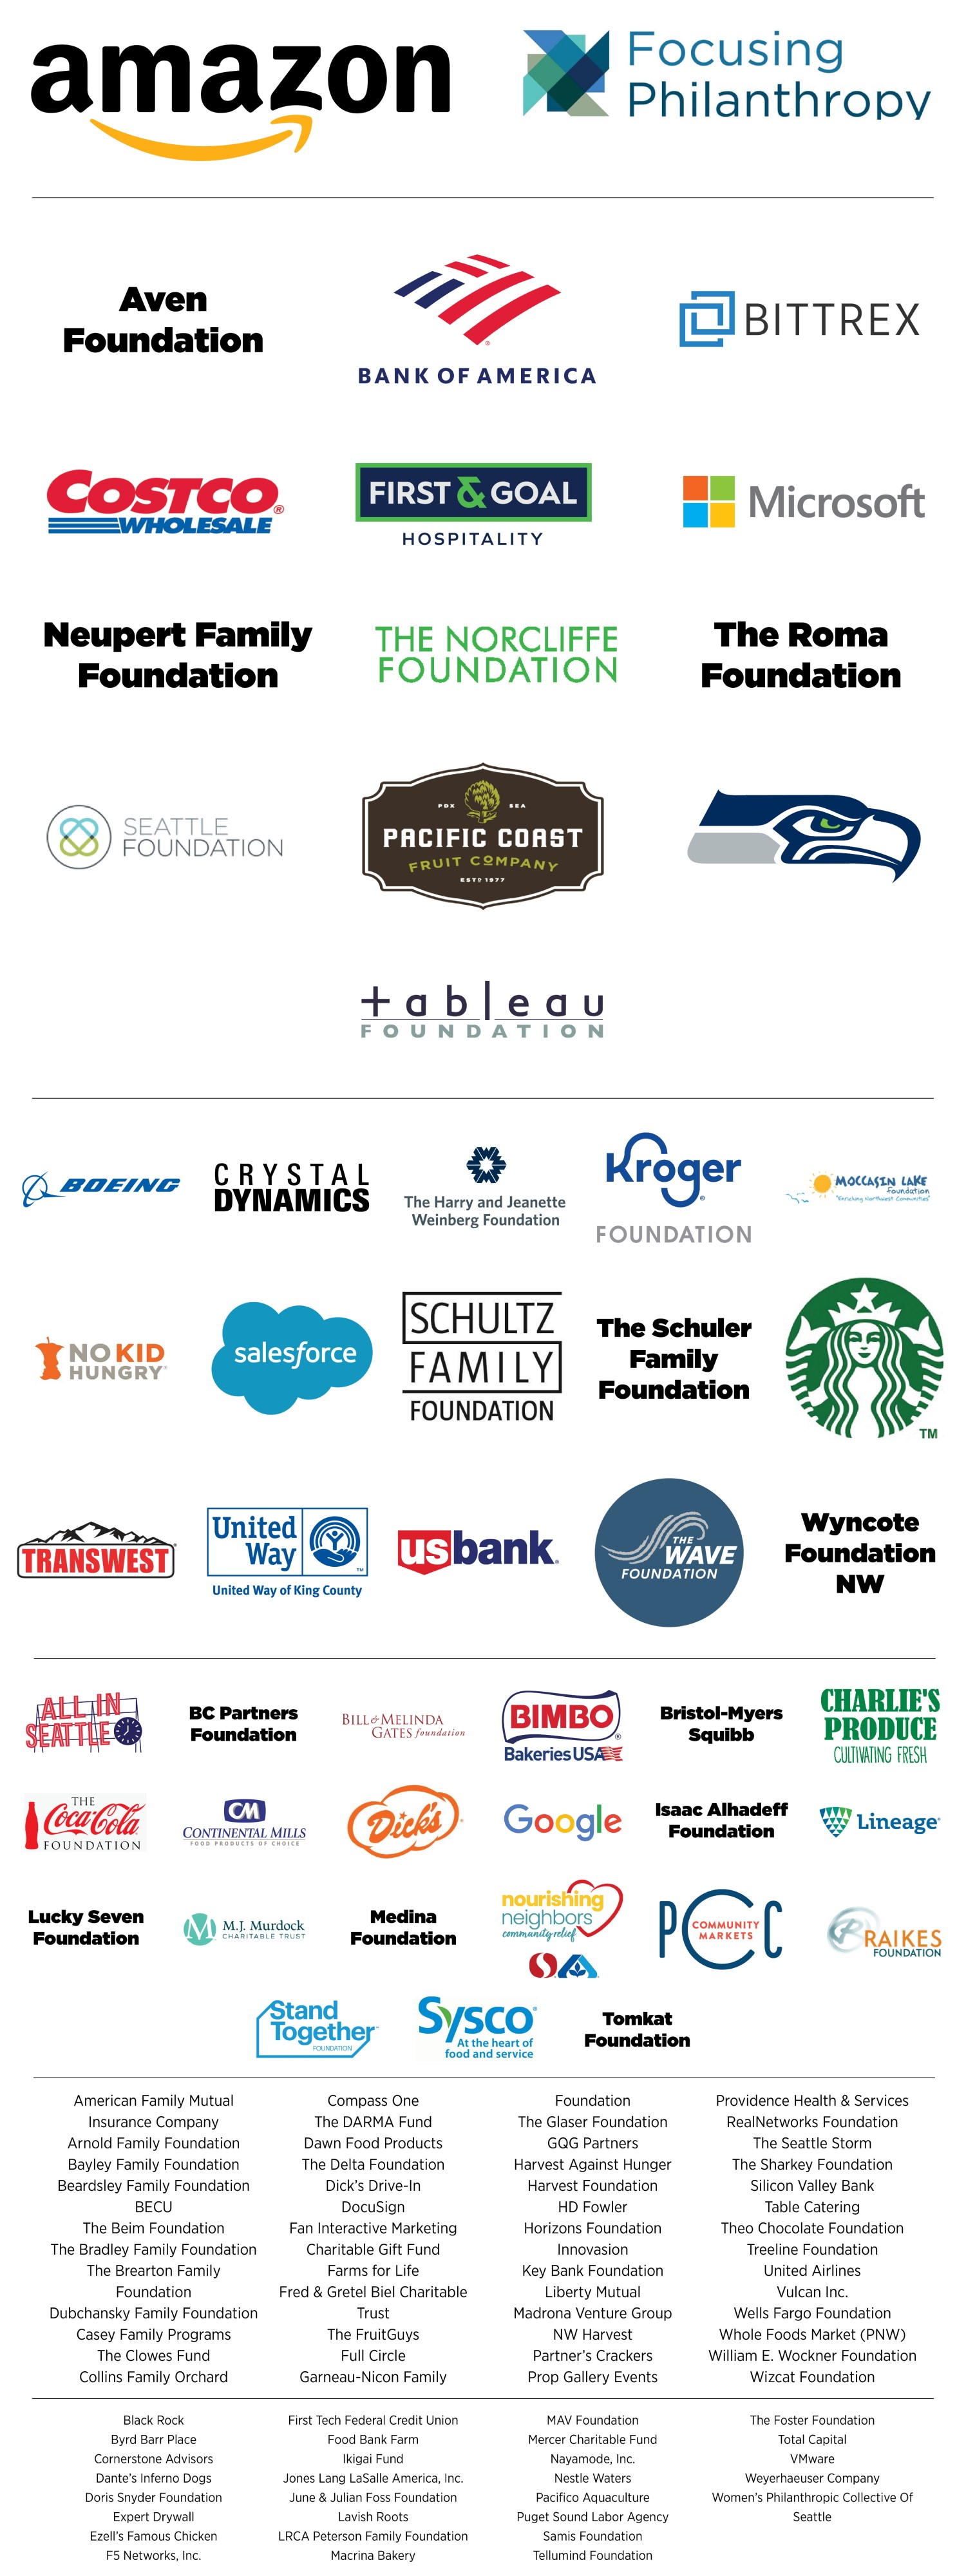 Thank you to our donors: Tableau, Bank of America, Amazon, and more